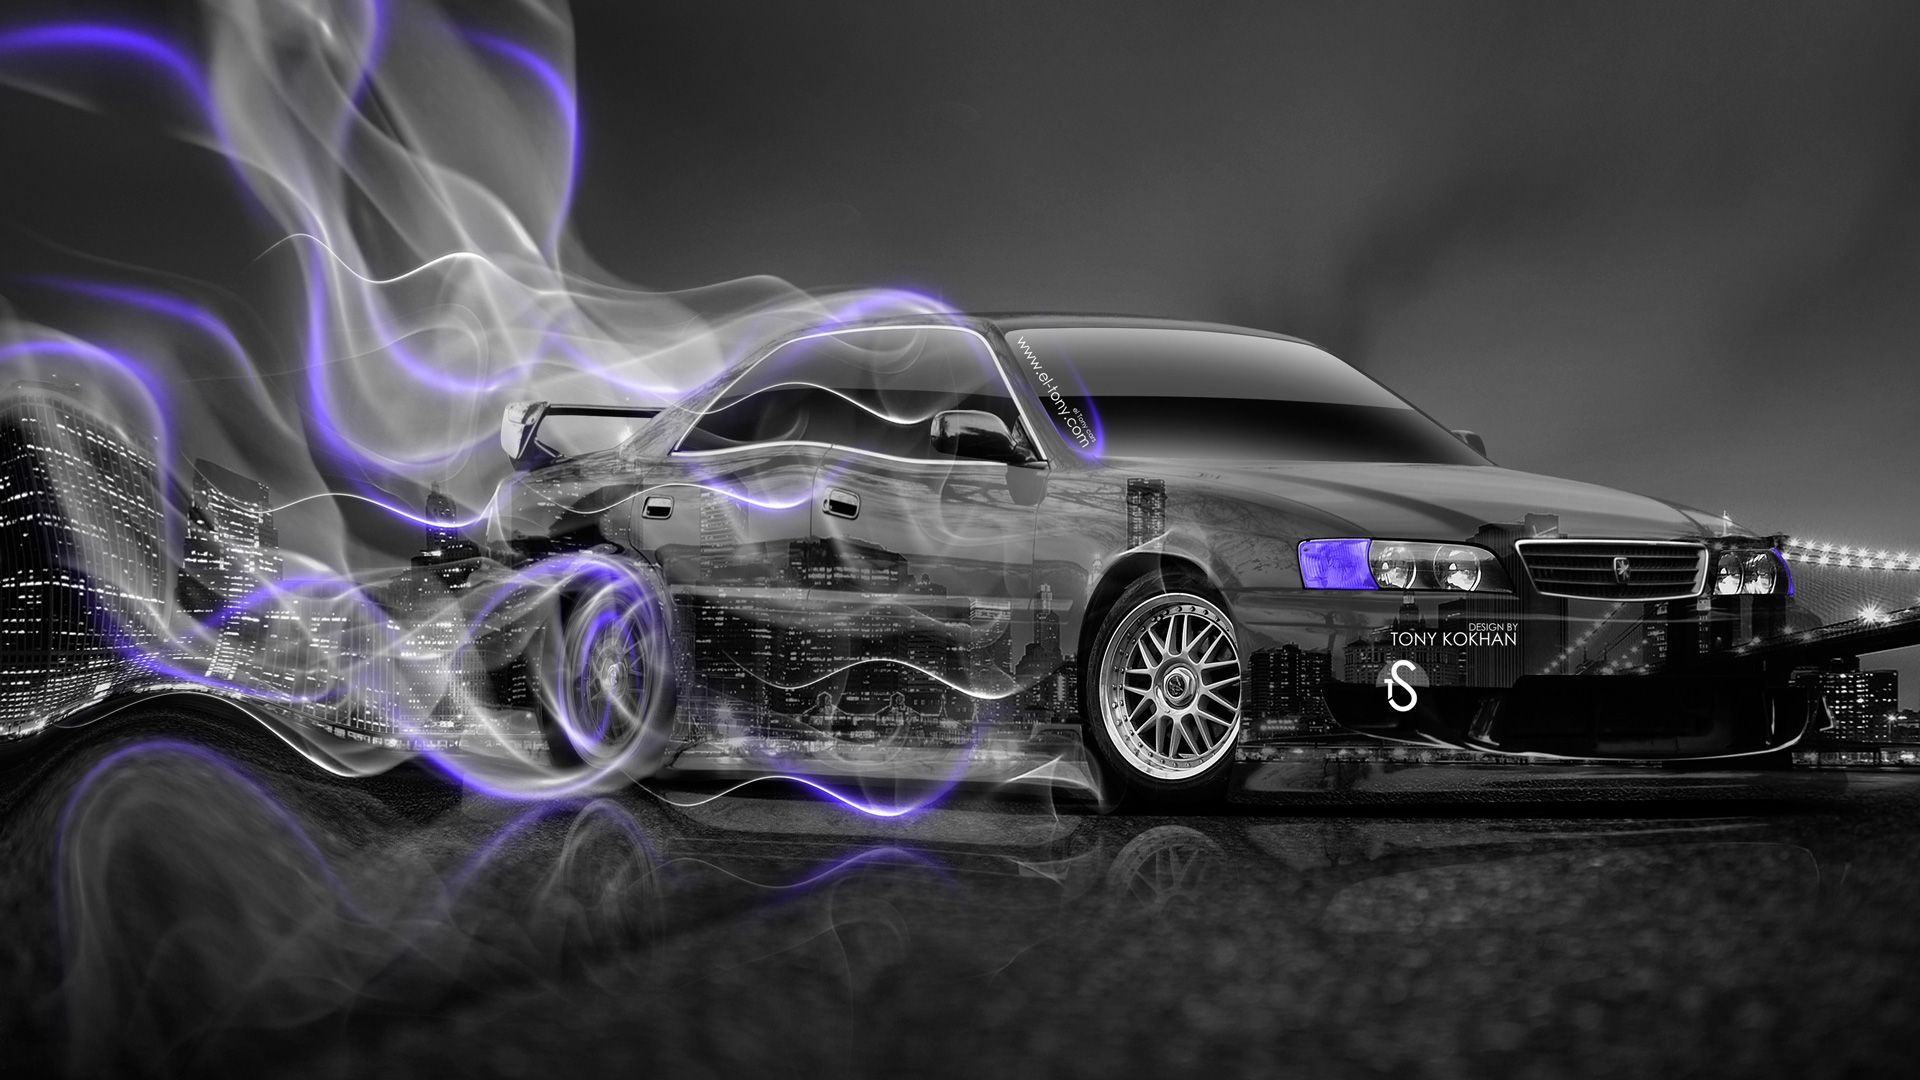 Toyota Chaser Jdm Crystal City Drift Smoke Car El Tony